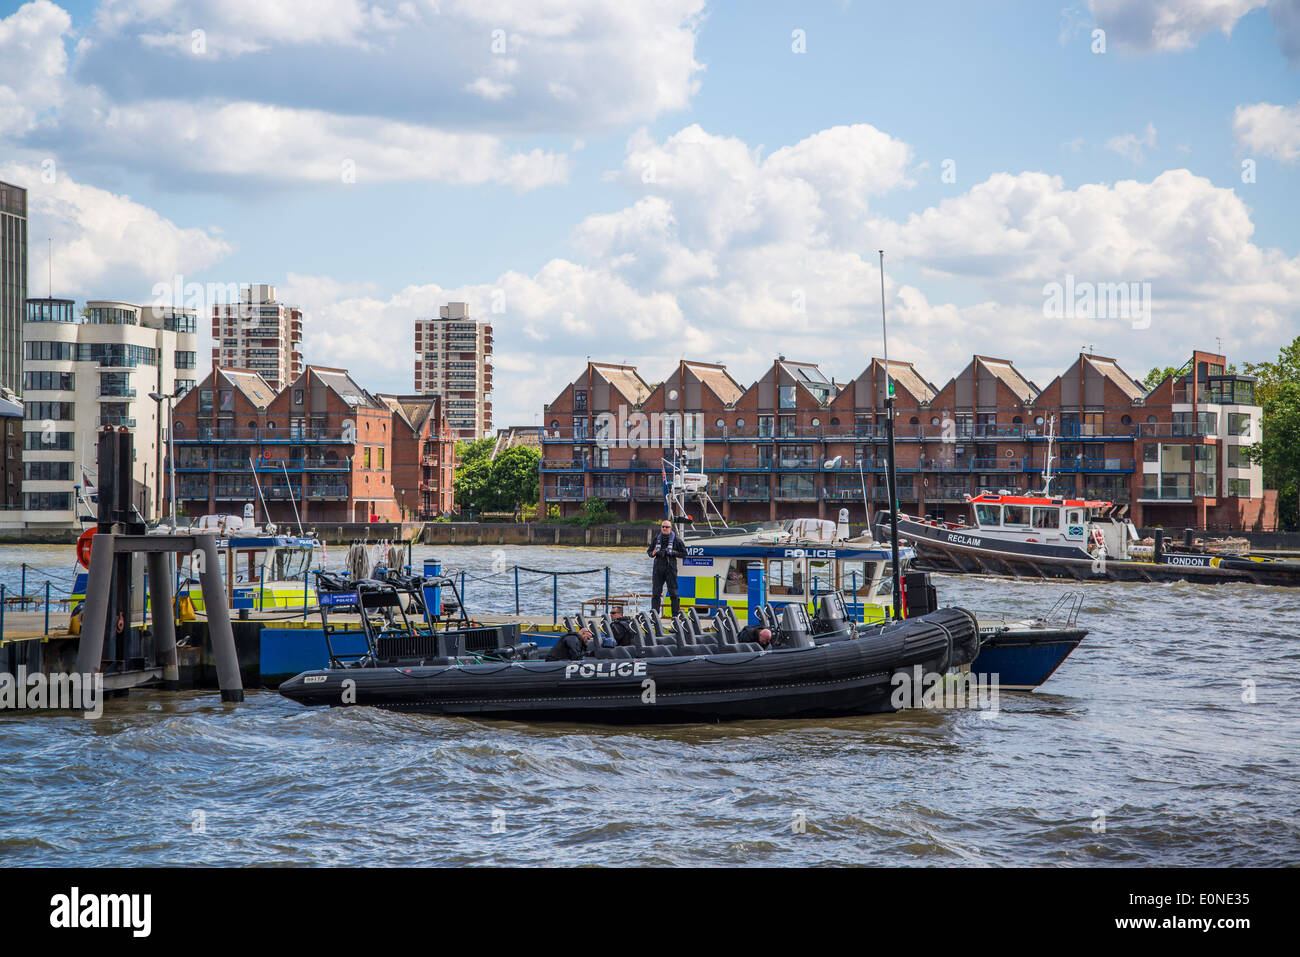 Marine Police Force, also known as the Thames River Police, Tower Hamlets, London, UK - Stock Image